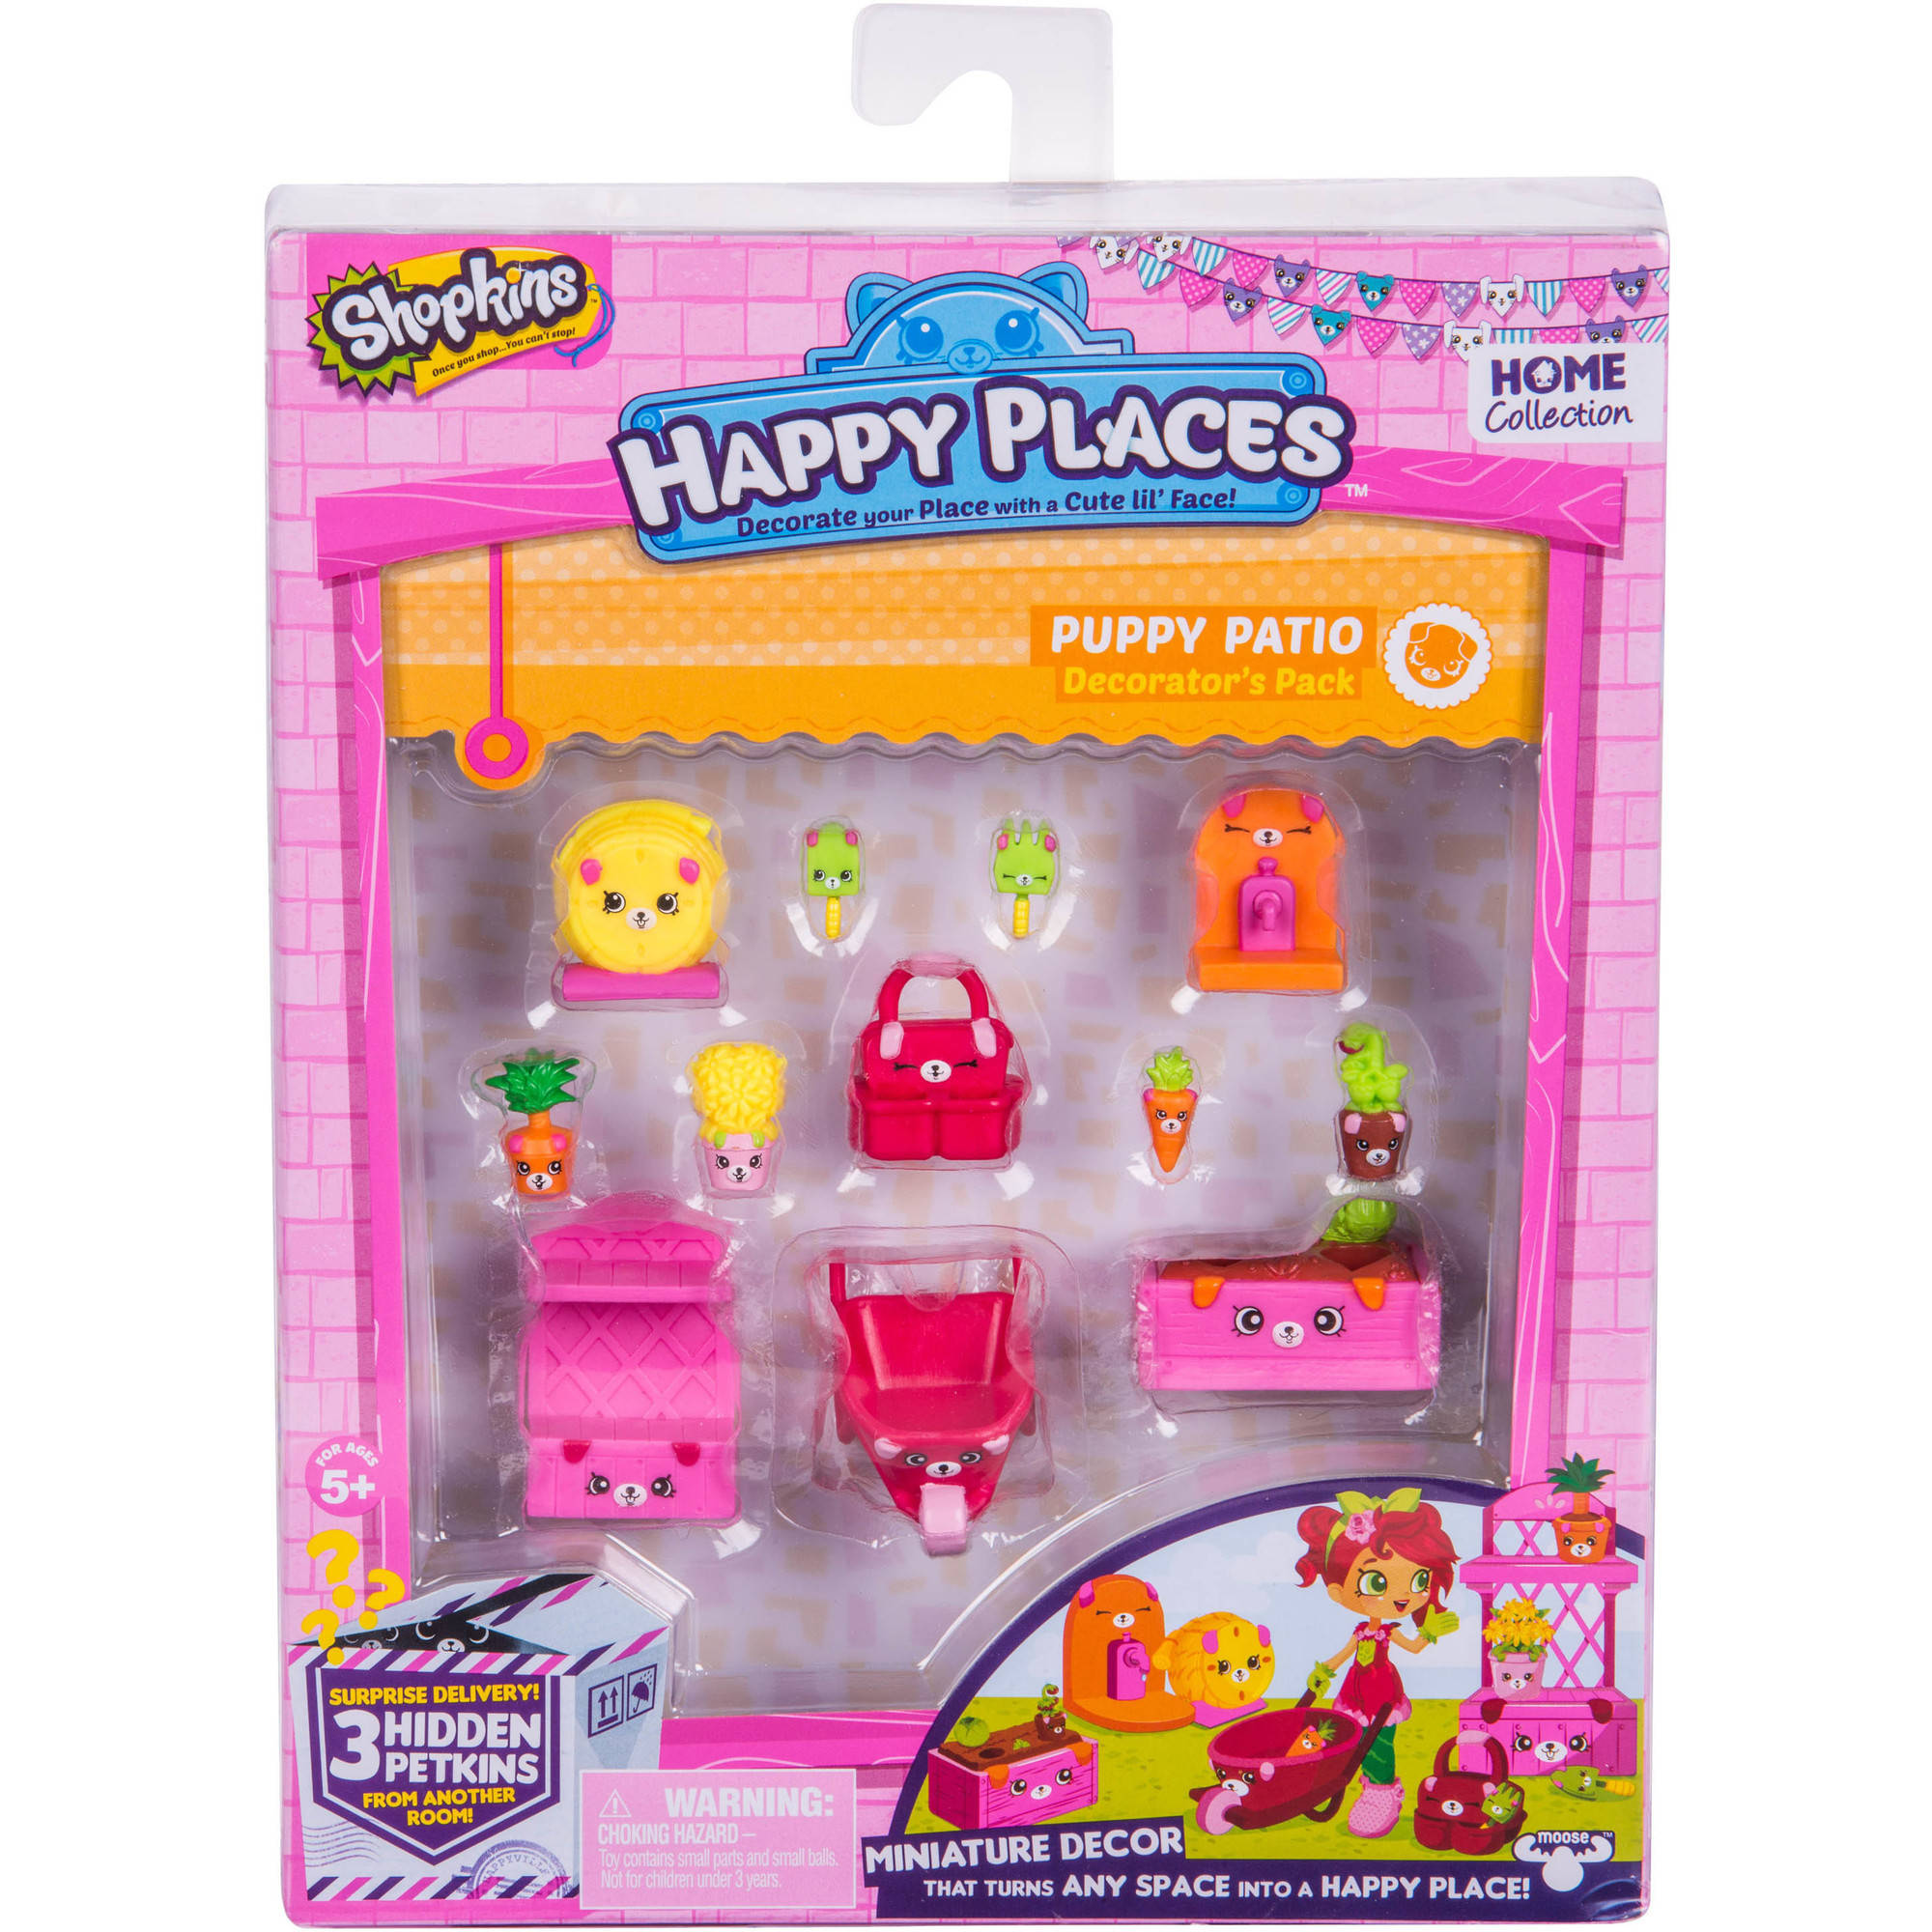 Happy Places Shopkins S2 Decorator Pack, Puppy Patio